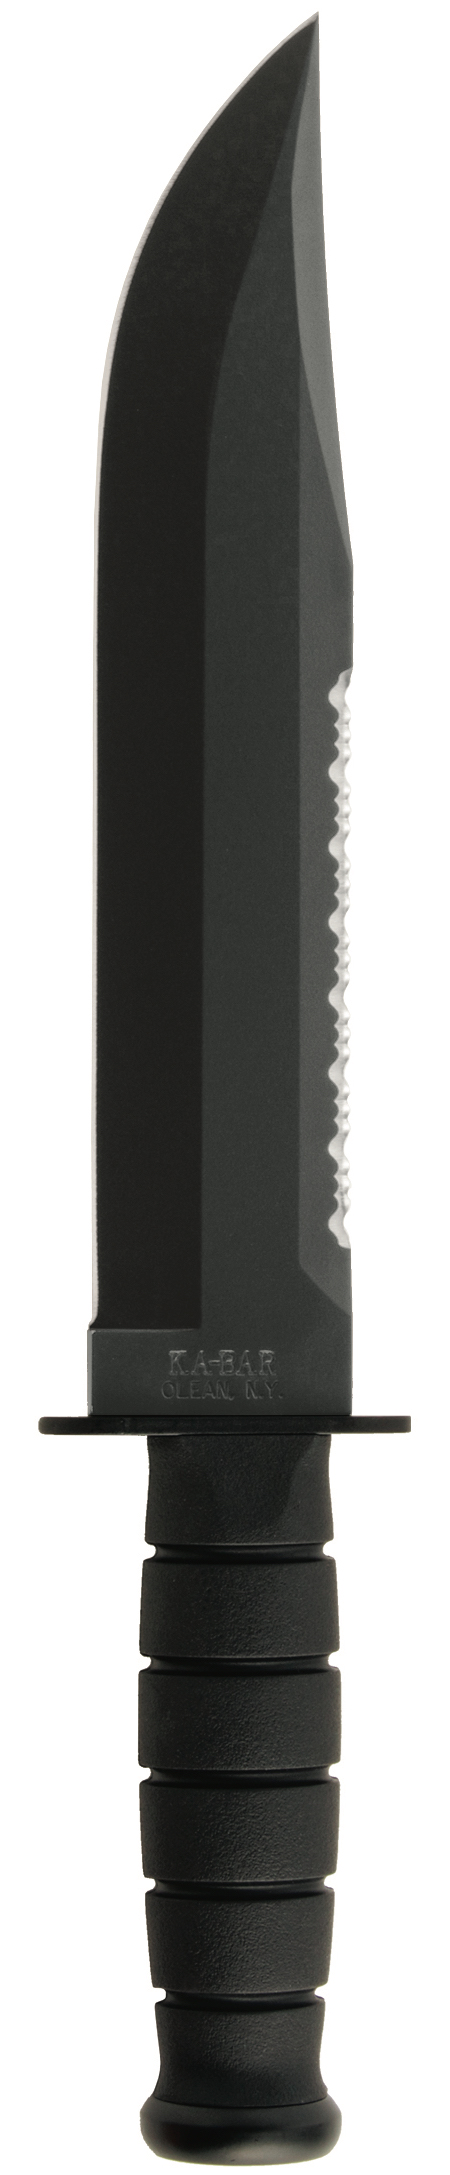 2211 - KA-BAR KRATON HANDLED BIG BROTHER